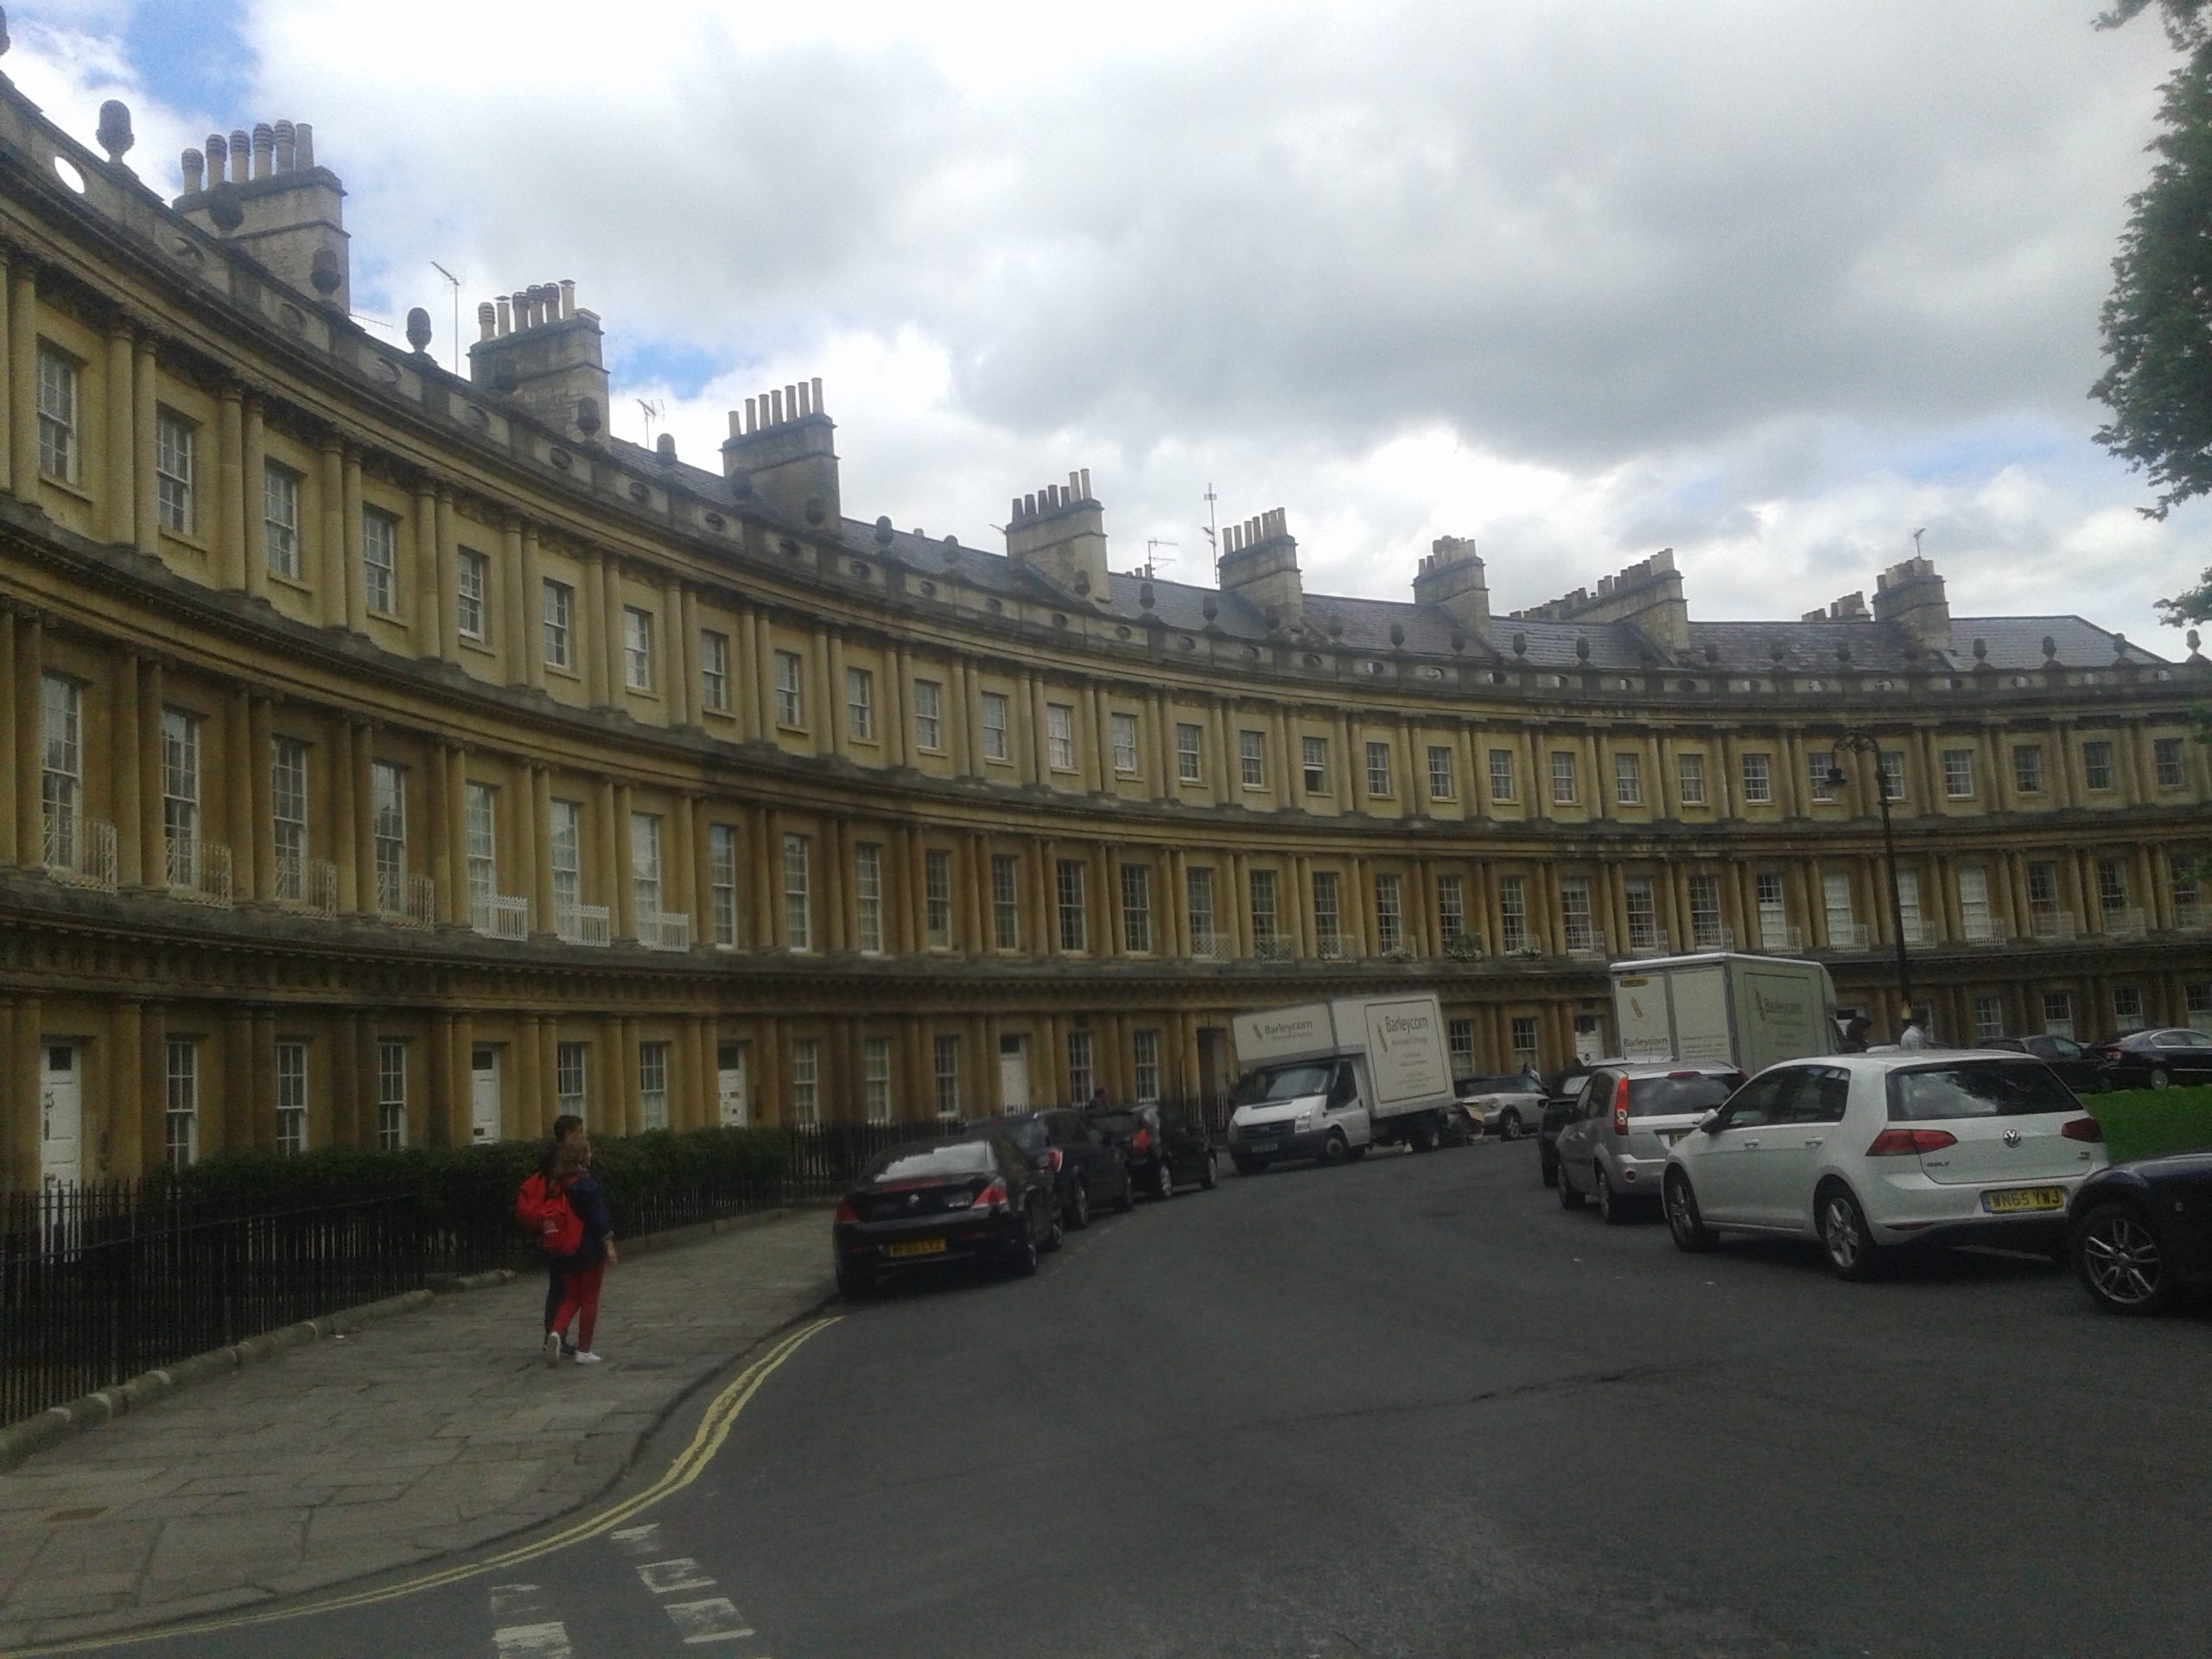 Bath - The Royal Circus